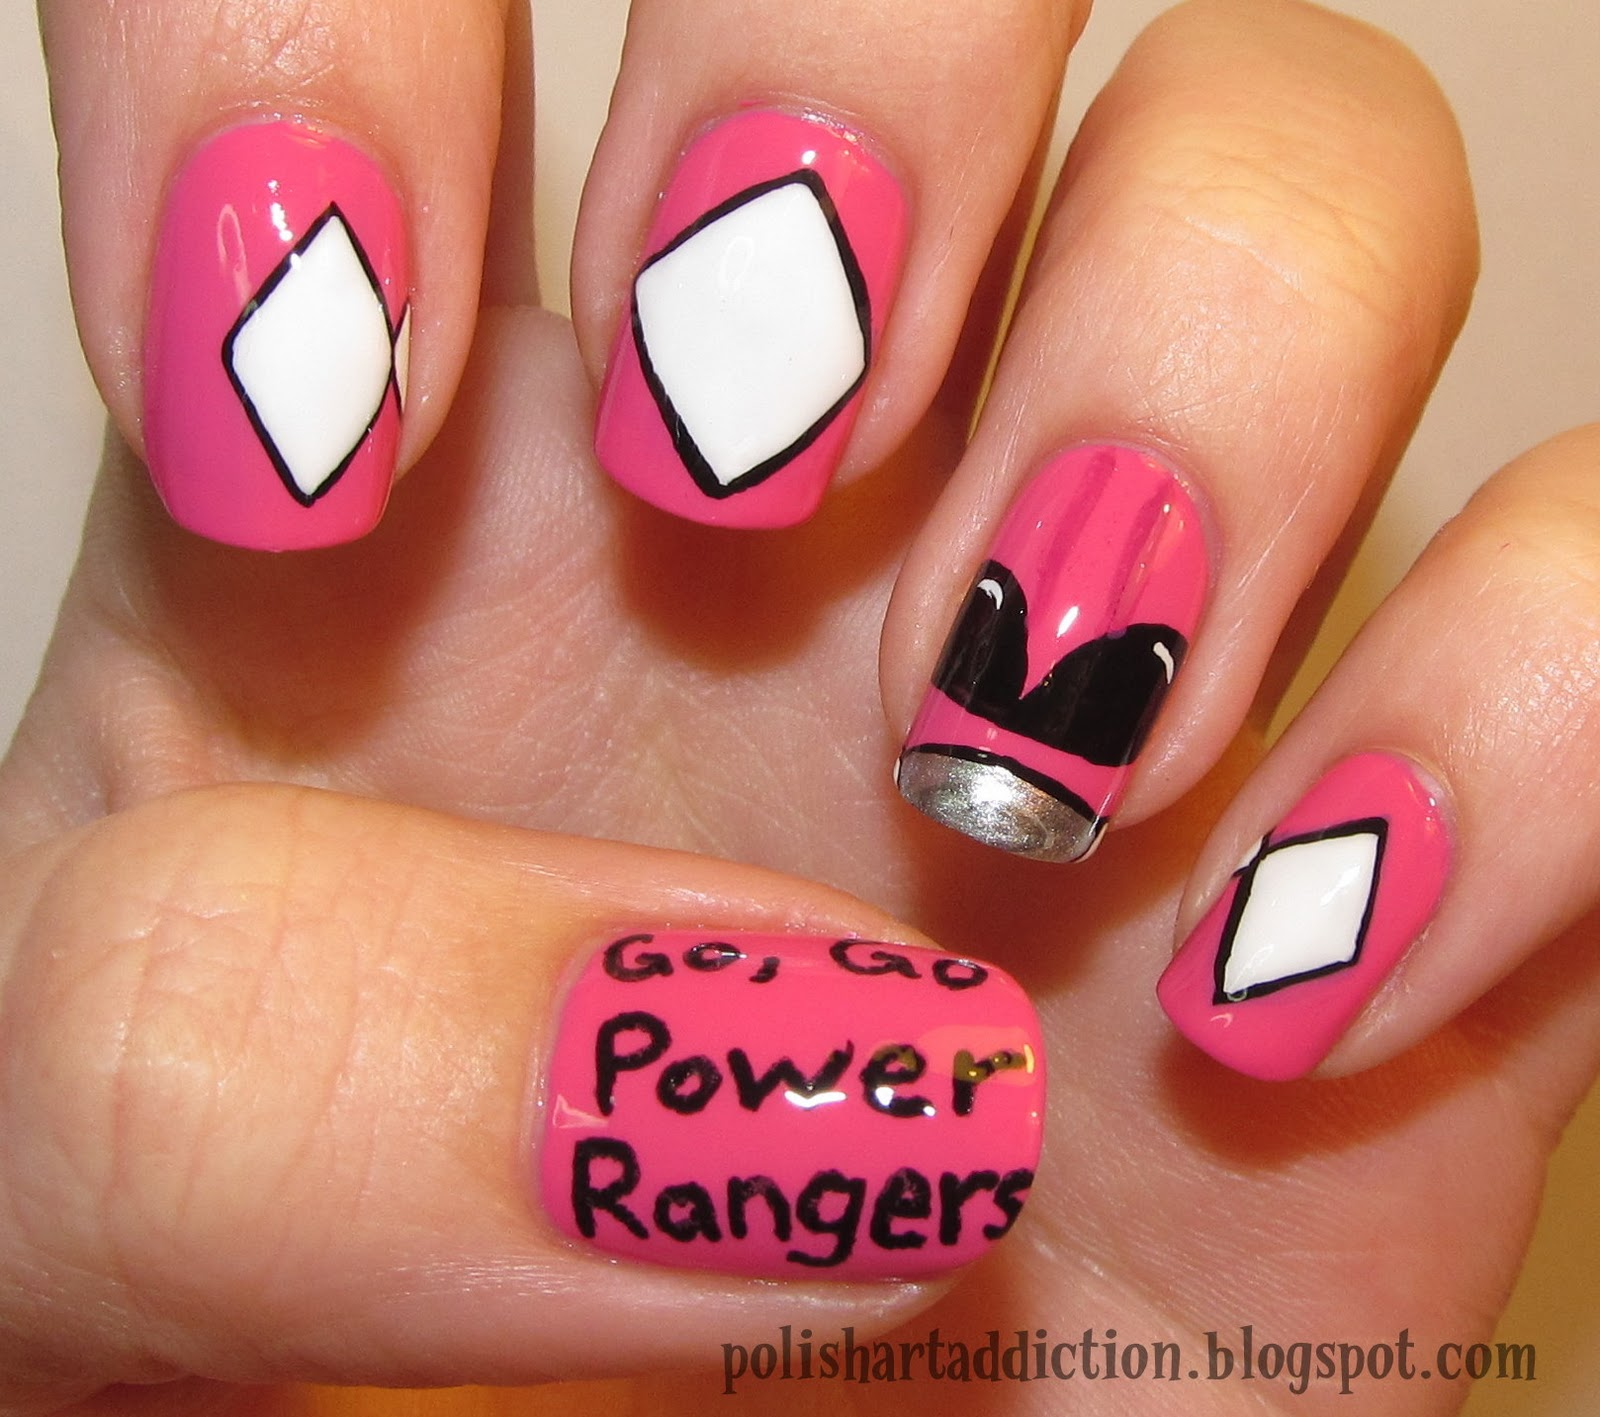 Blogger Challenge - Day 5 - Power Rangers